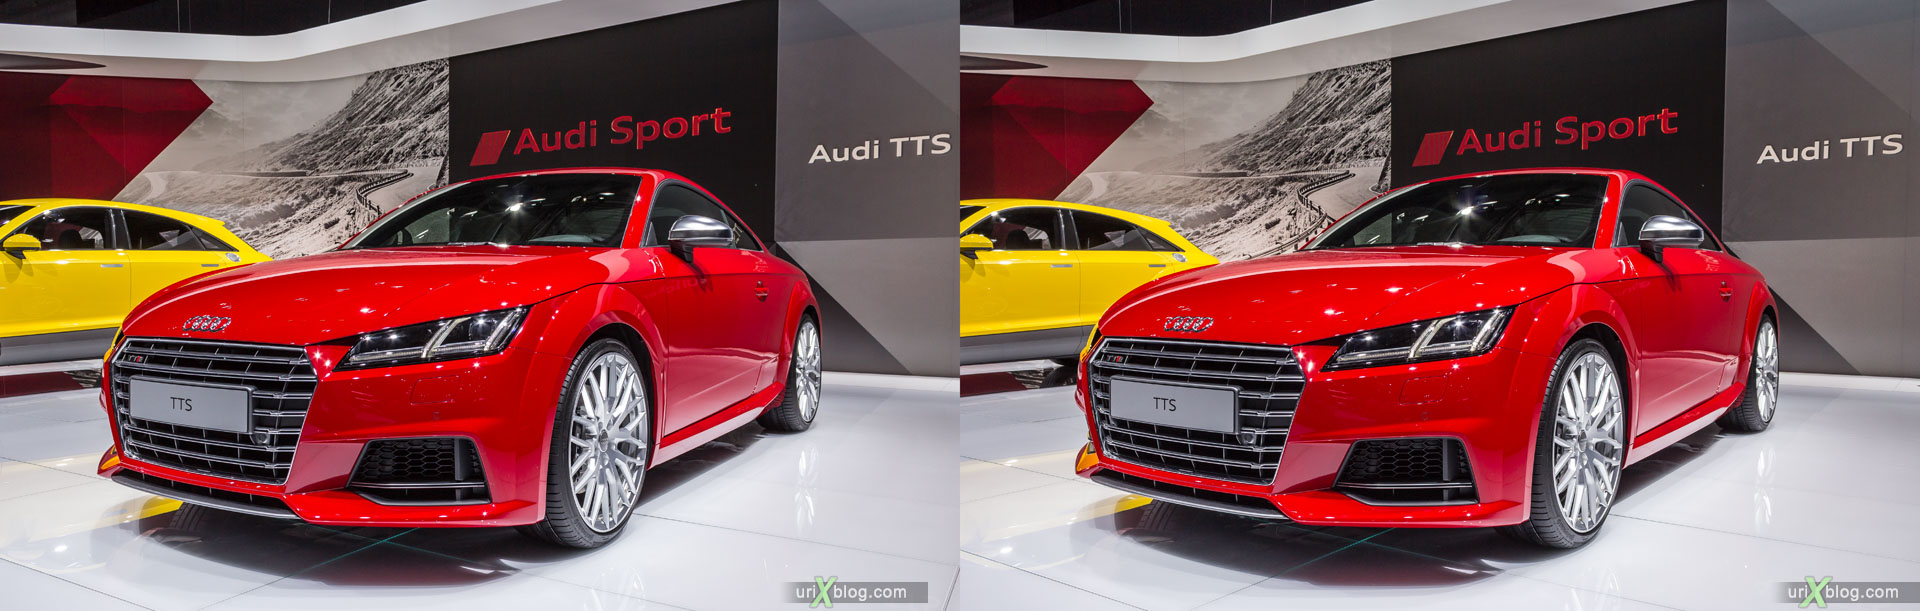 Audi TTS, Moscow International Automobile Salon 2014, MIAS 2014, girls, models, Crocus Expo, Moscow, Russia, 3D, stereo pair, cross-eyed, crossview, cross view stereo pair, stereoscopic, 2014